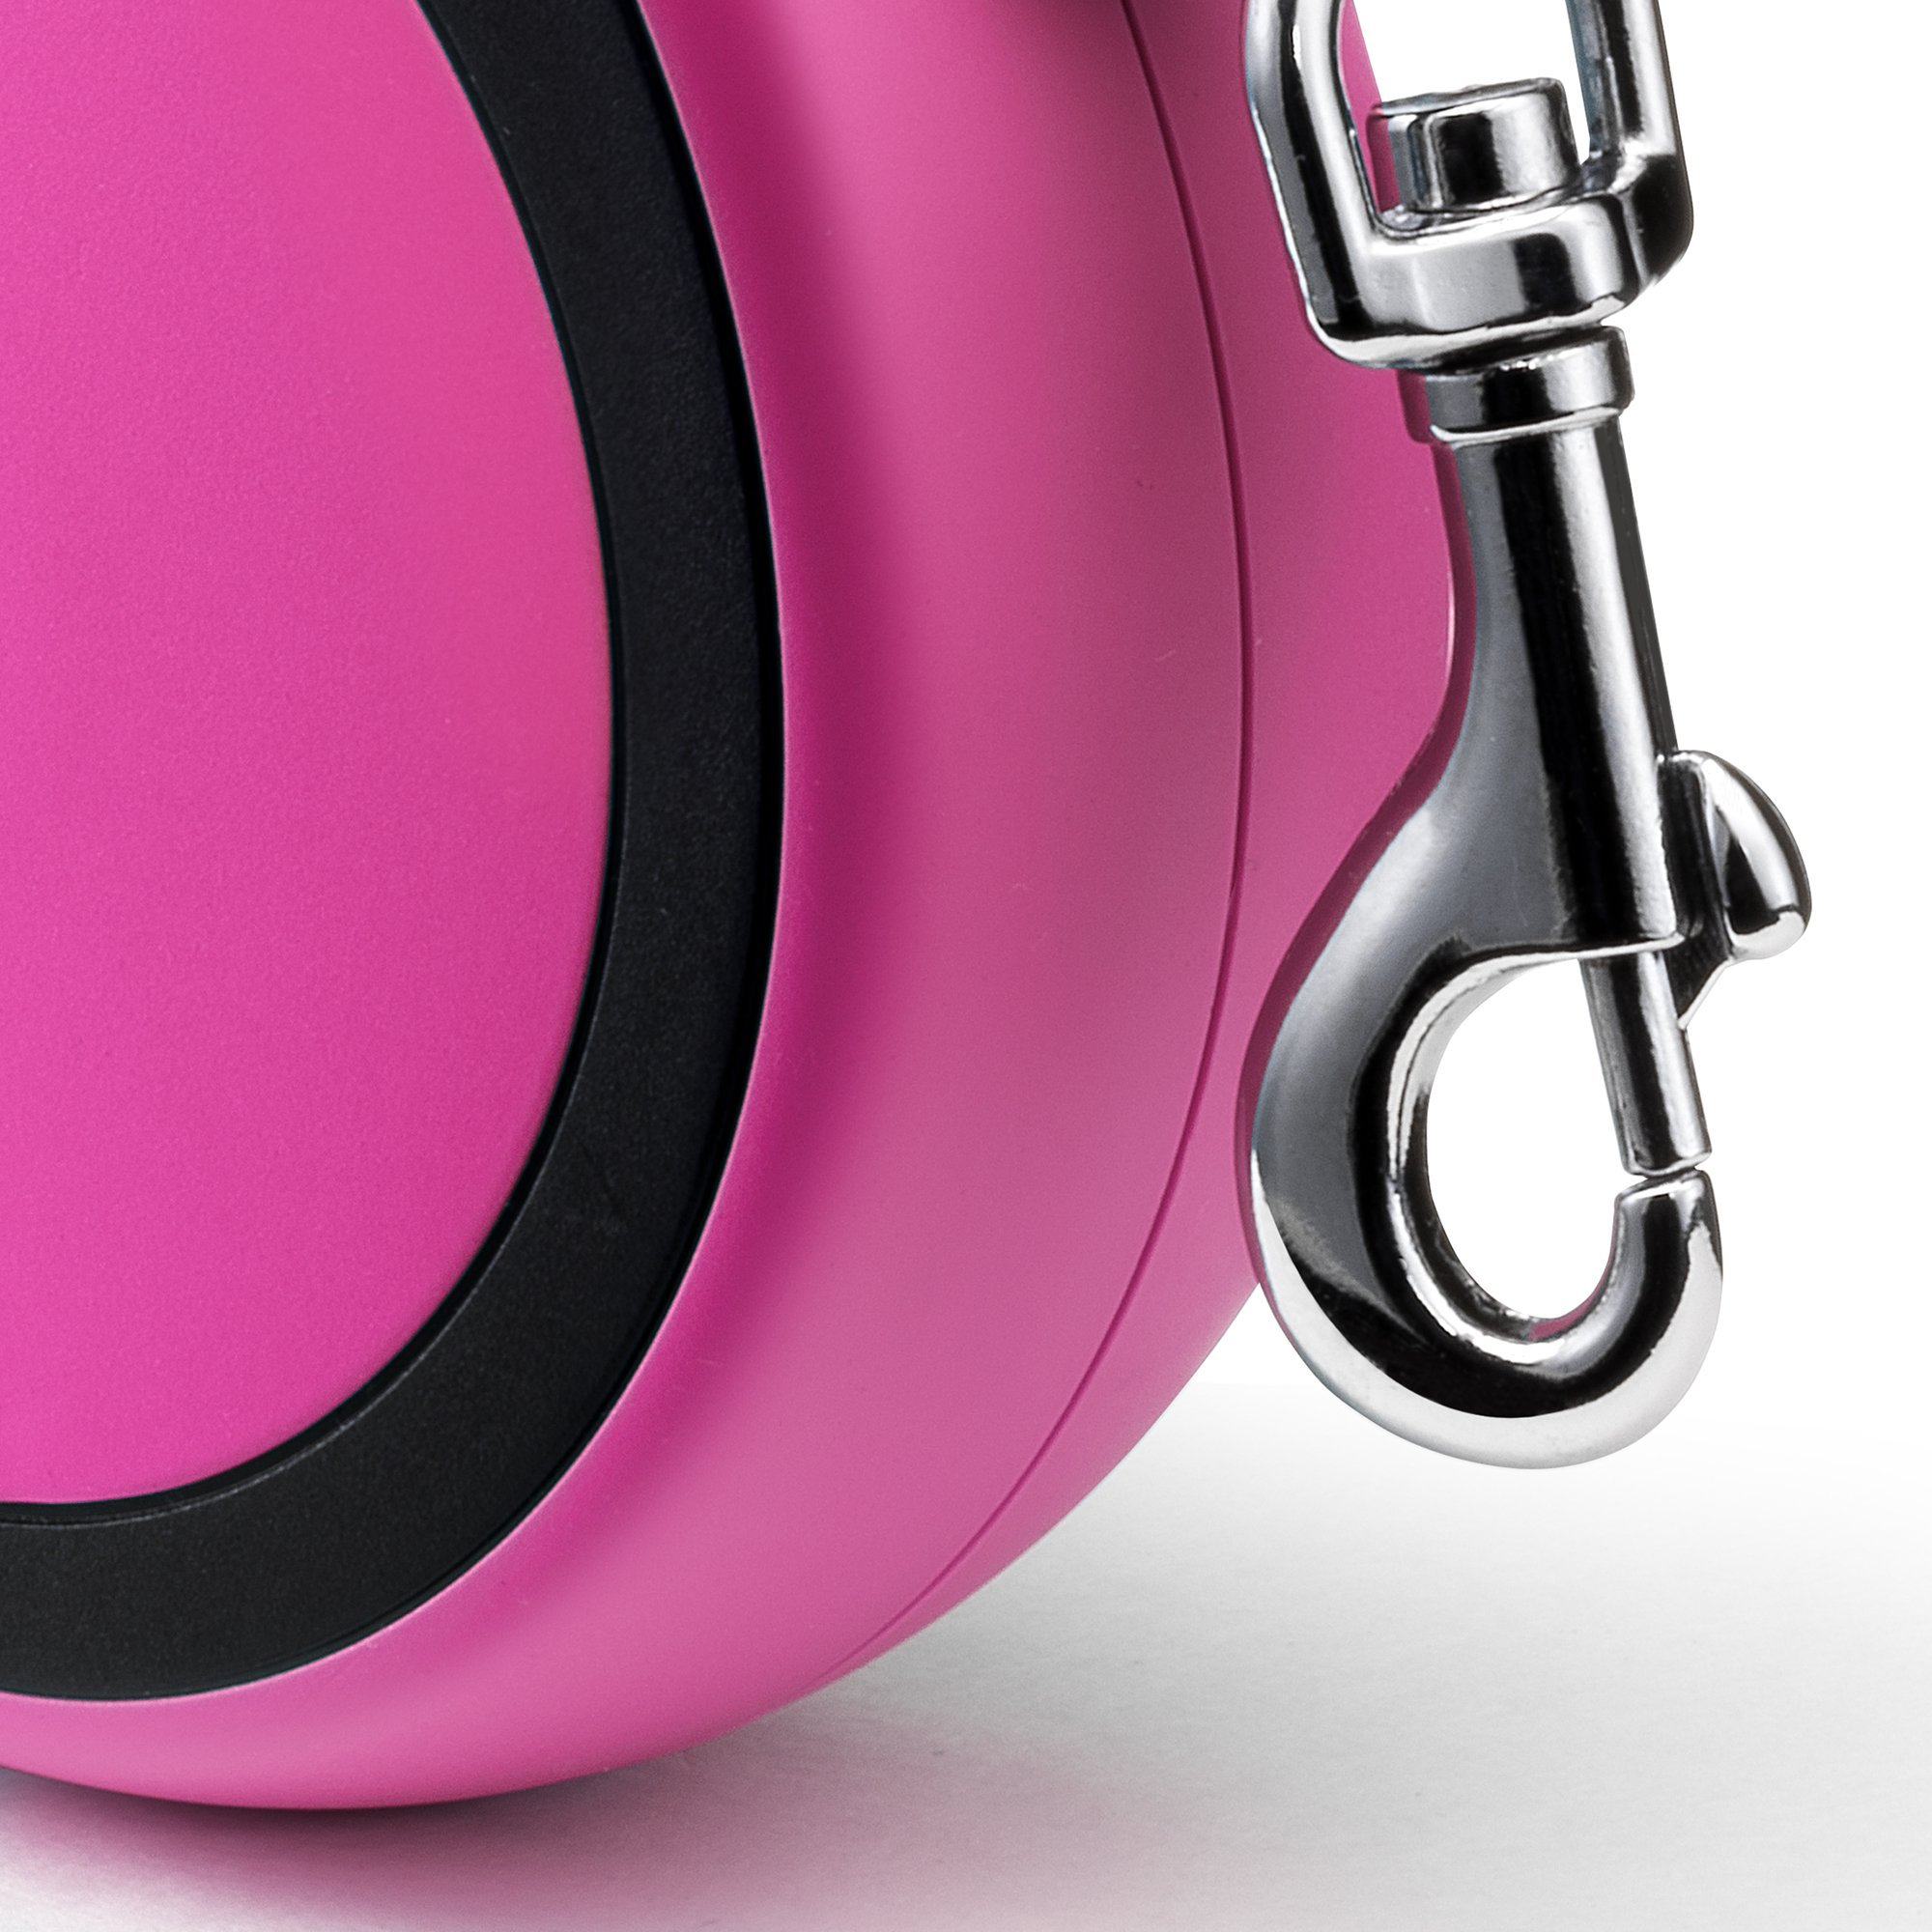 Flexi New Comfort Retractable Dog Leash (Tape), 16 ft, Medium, Pink by Flexi (Image #4)